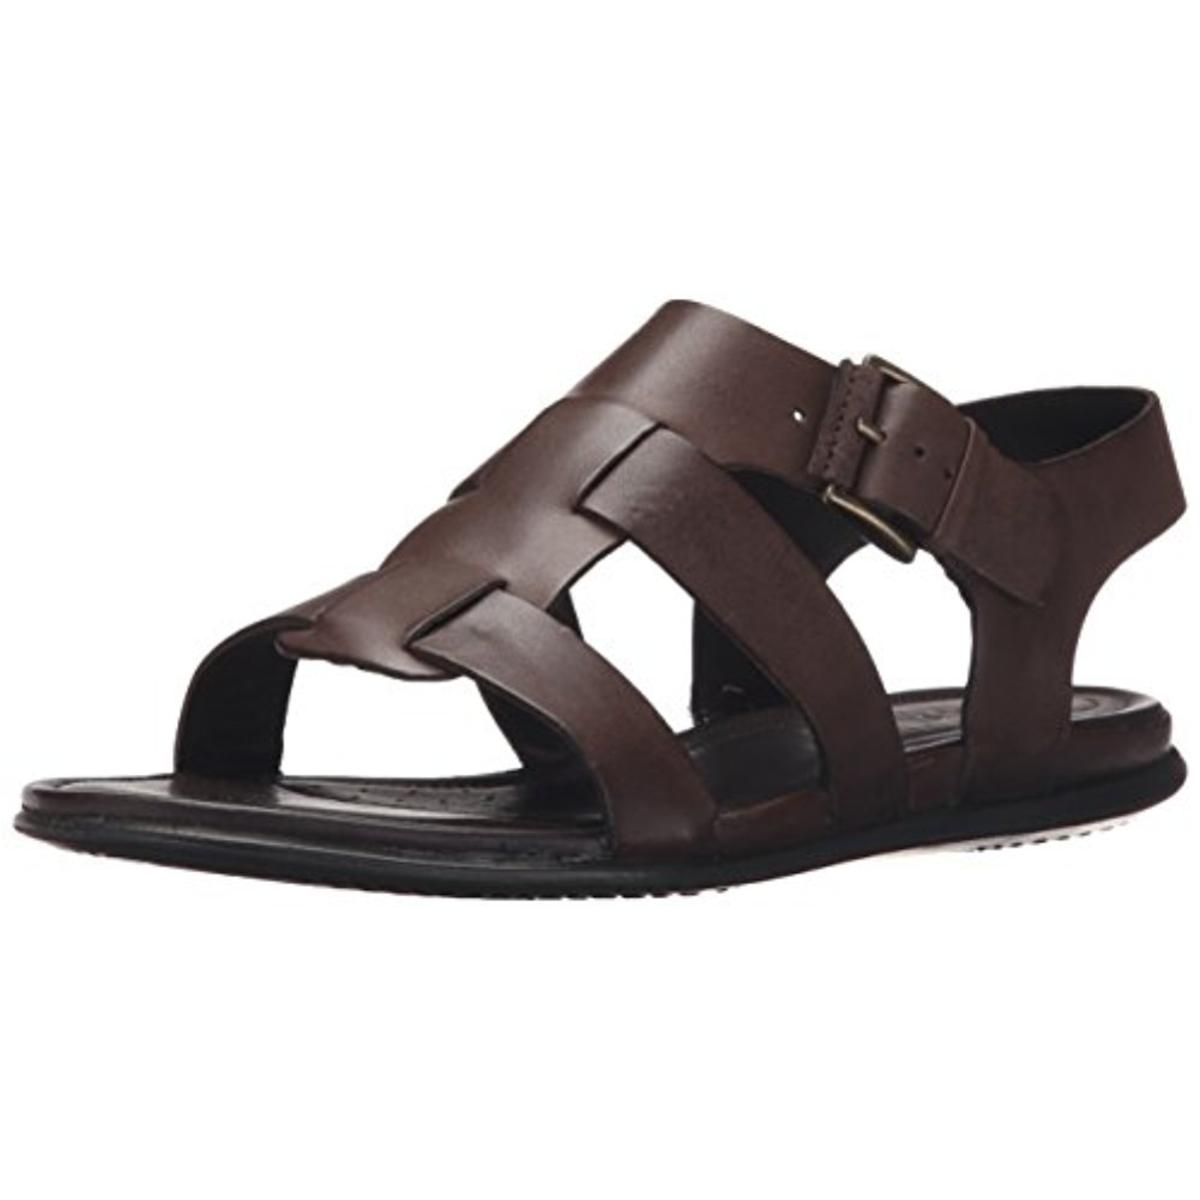 ECCO Womens Touch Leather Buckle Gladiator Sandals by Ecco